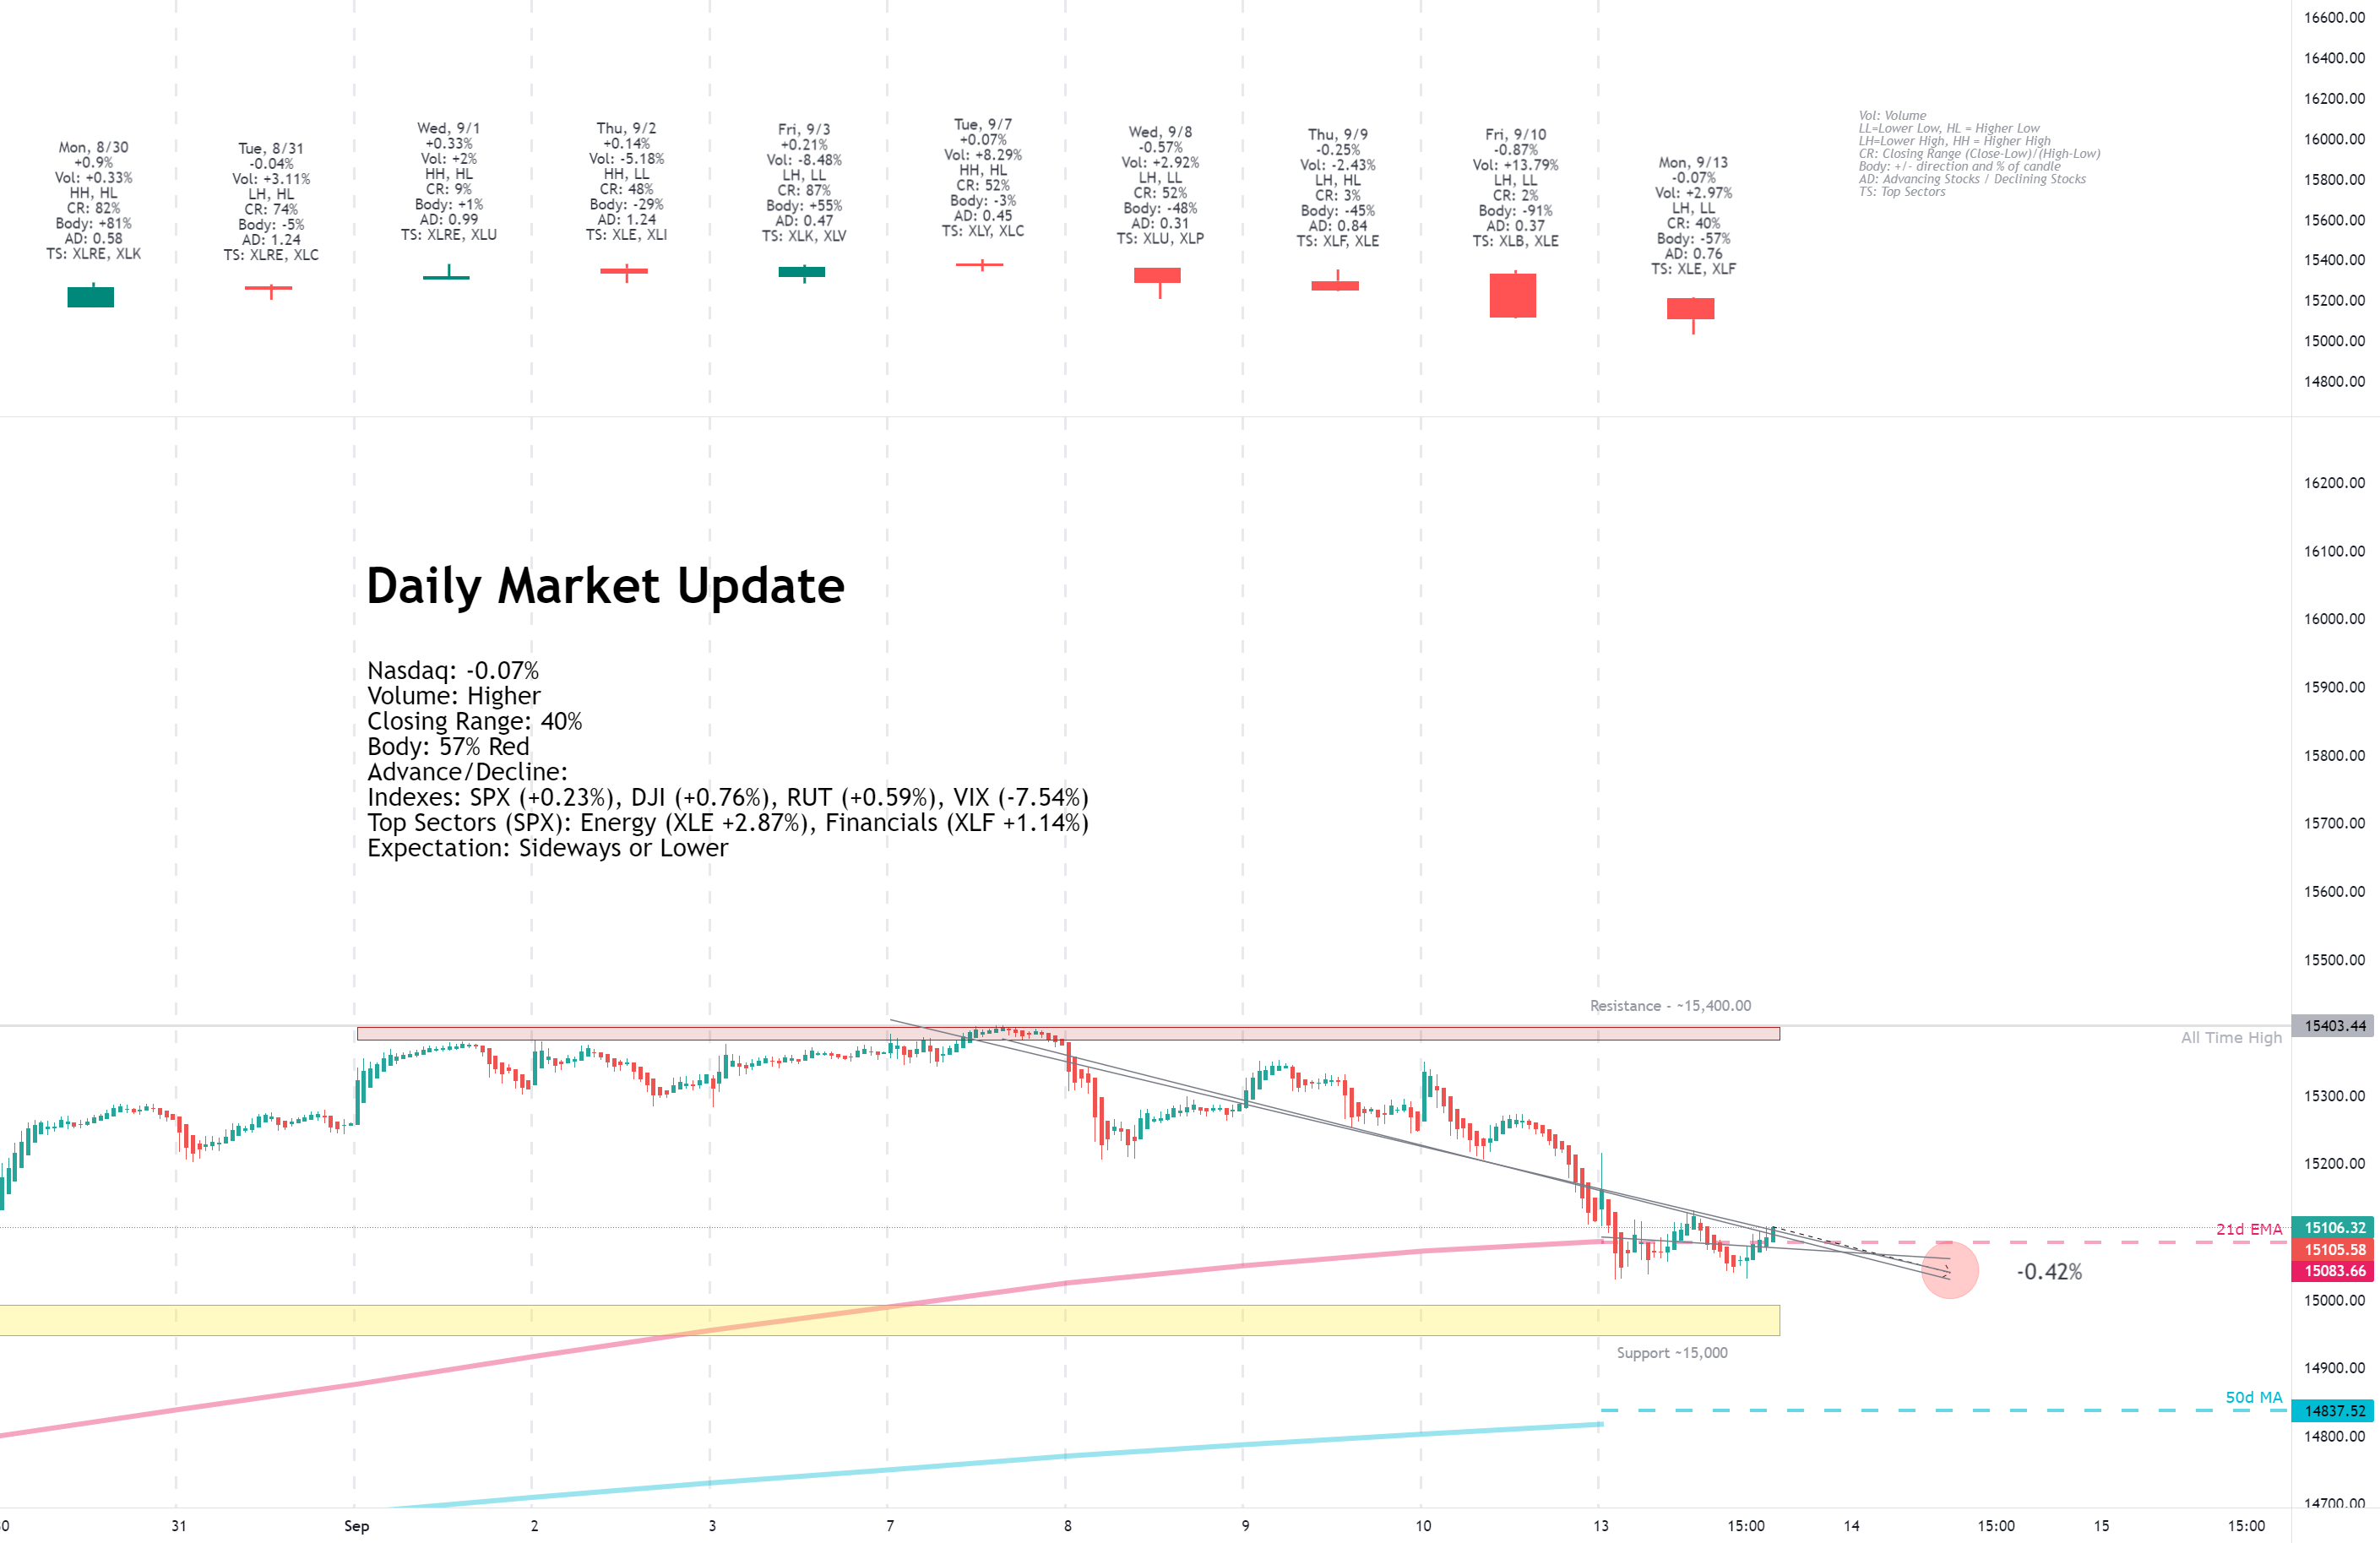 Daily Market Update for 9/13